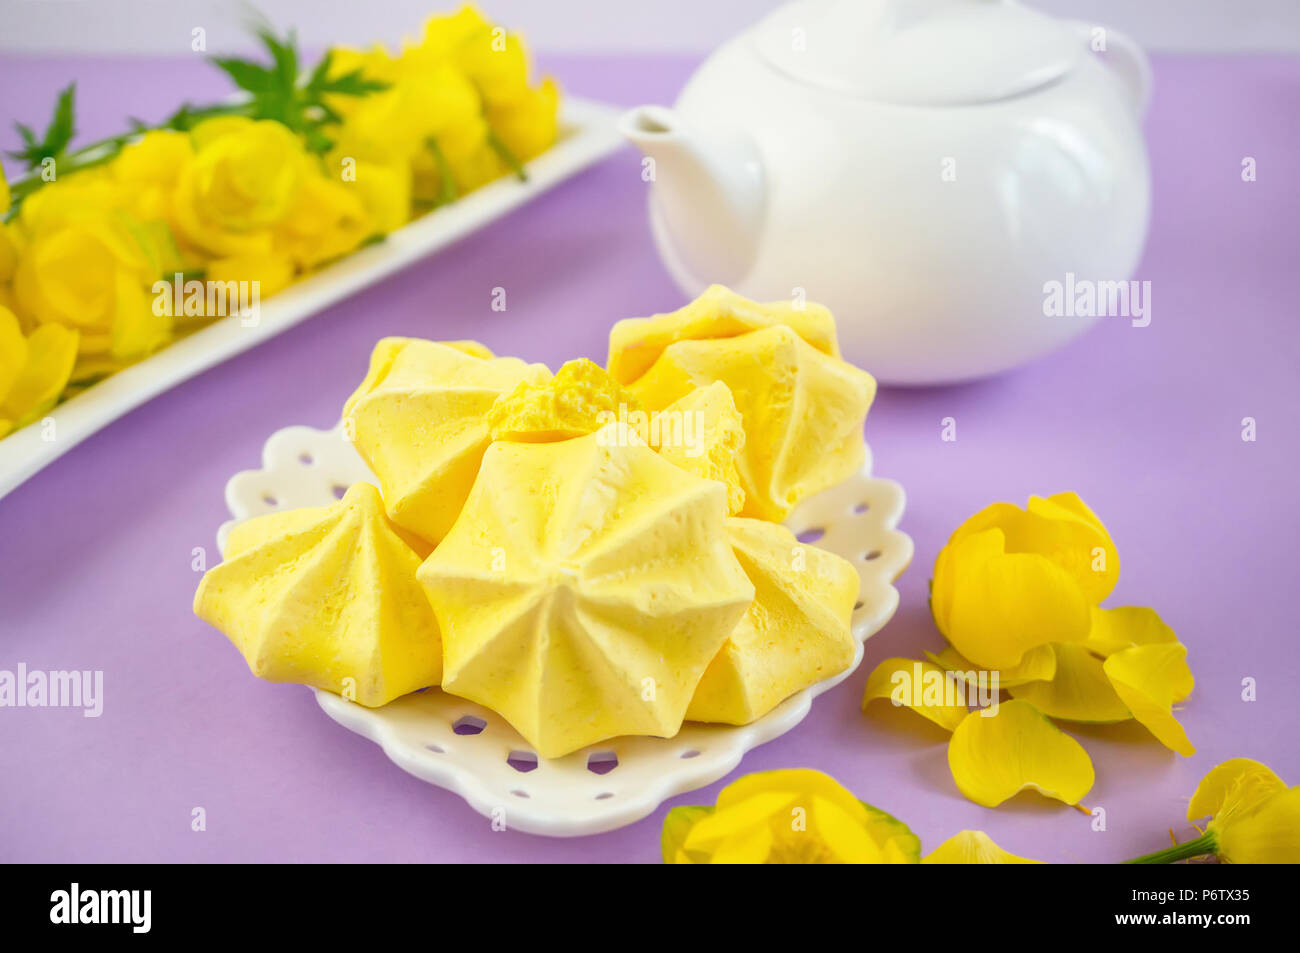 Yellow meringue on a lilac background in a tea serving with a white kettle. Stock Photo